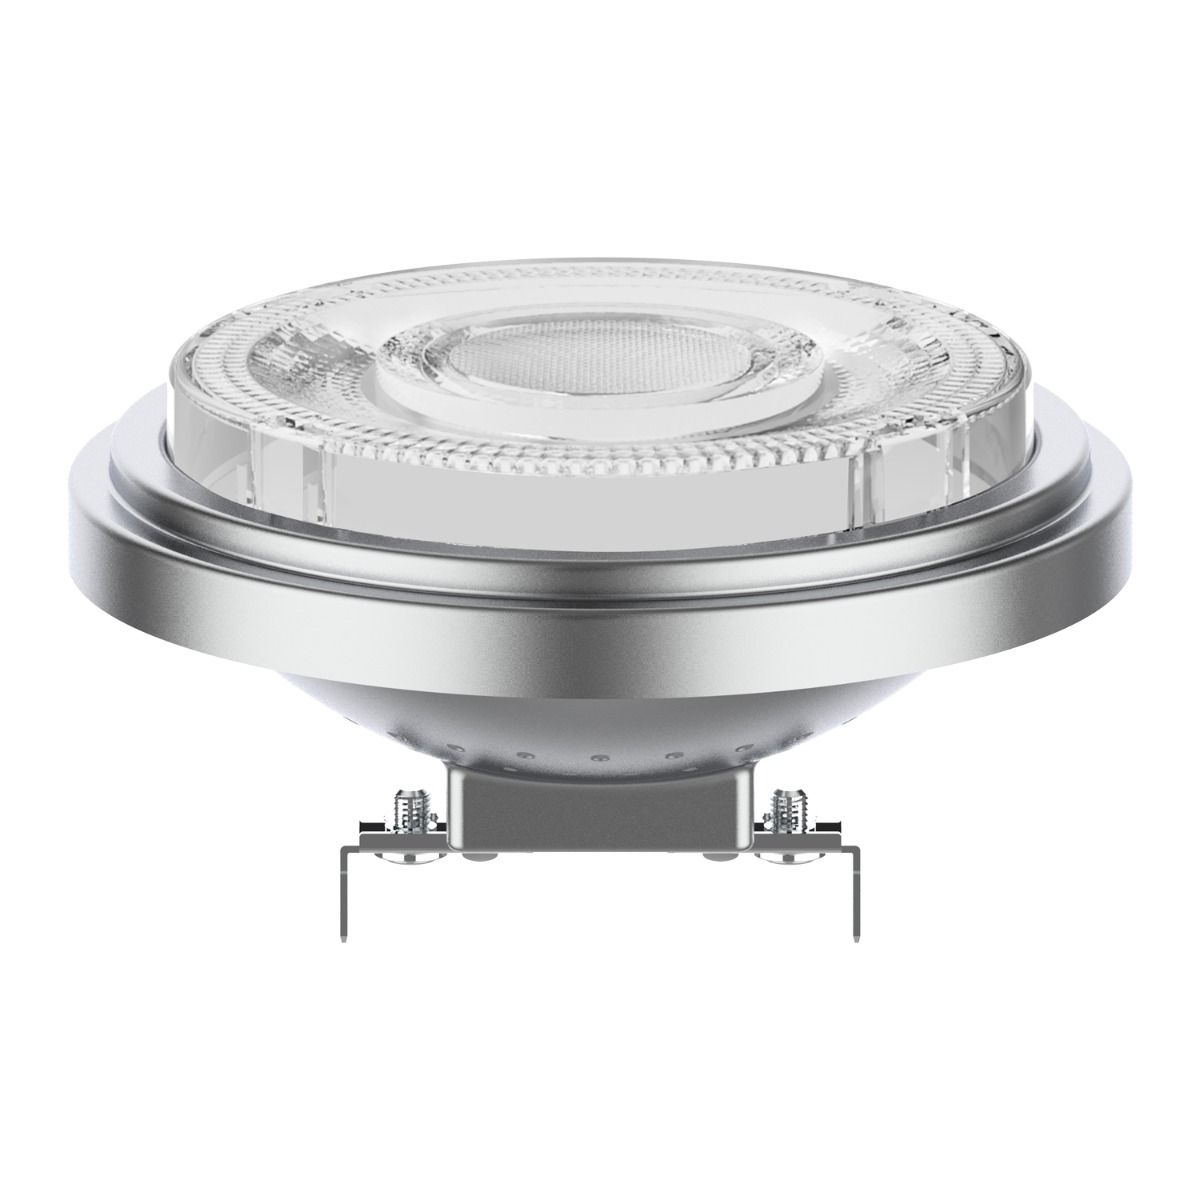 Noxion Lucent LED Spot AR111 G53 12V 11.5W 930 24D | Dimmable - Highest Colour Rendering - Replacer for 75W